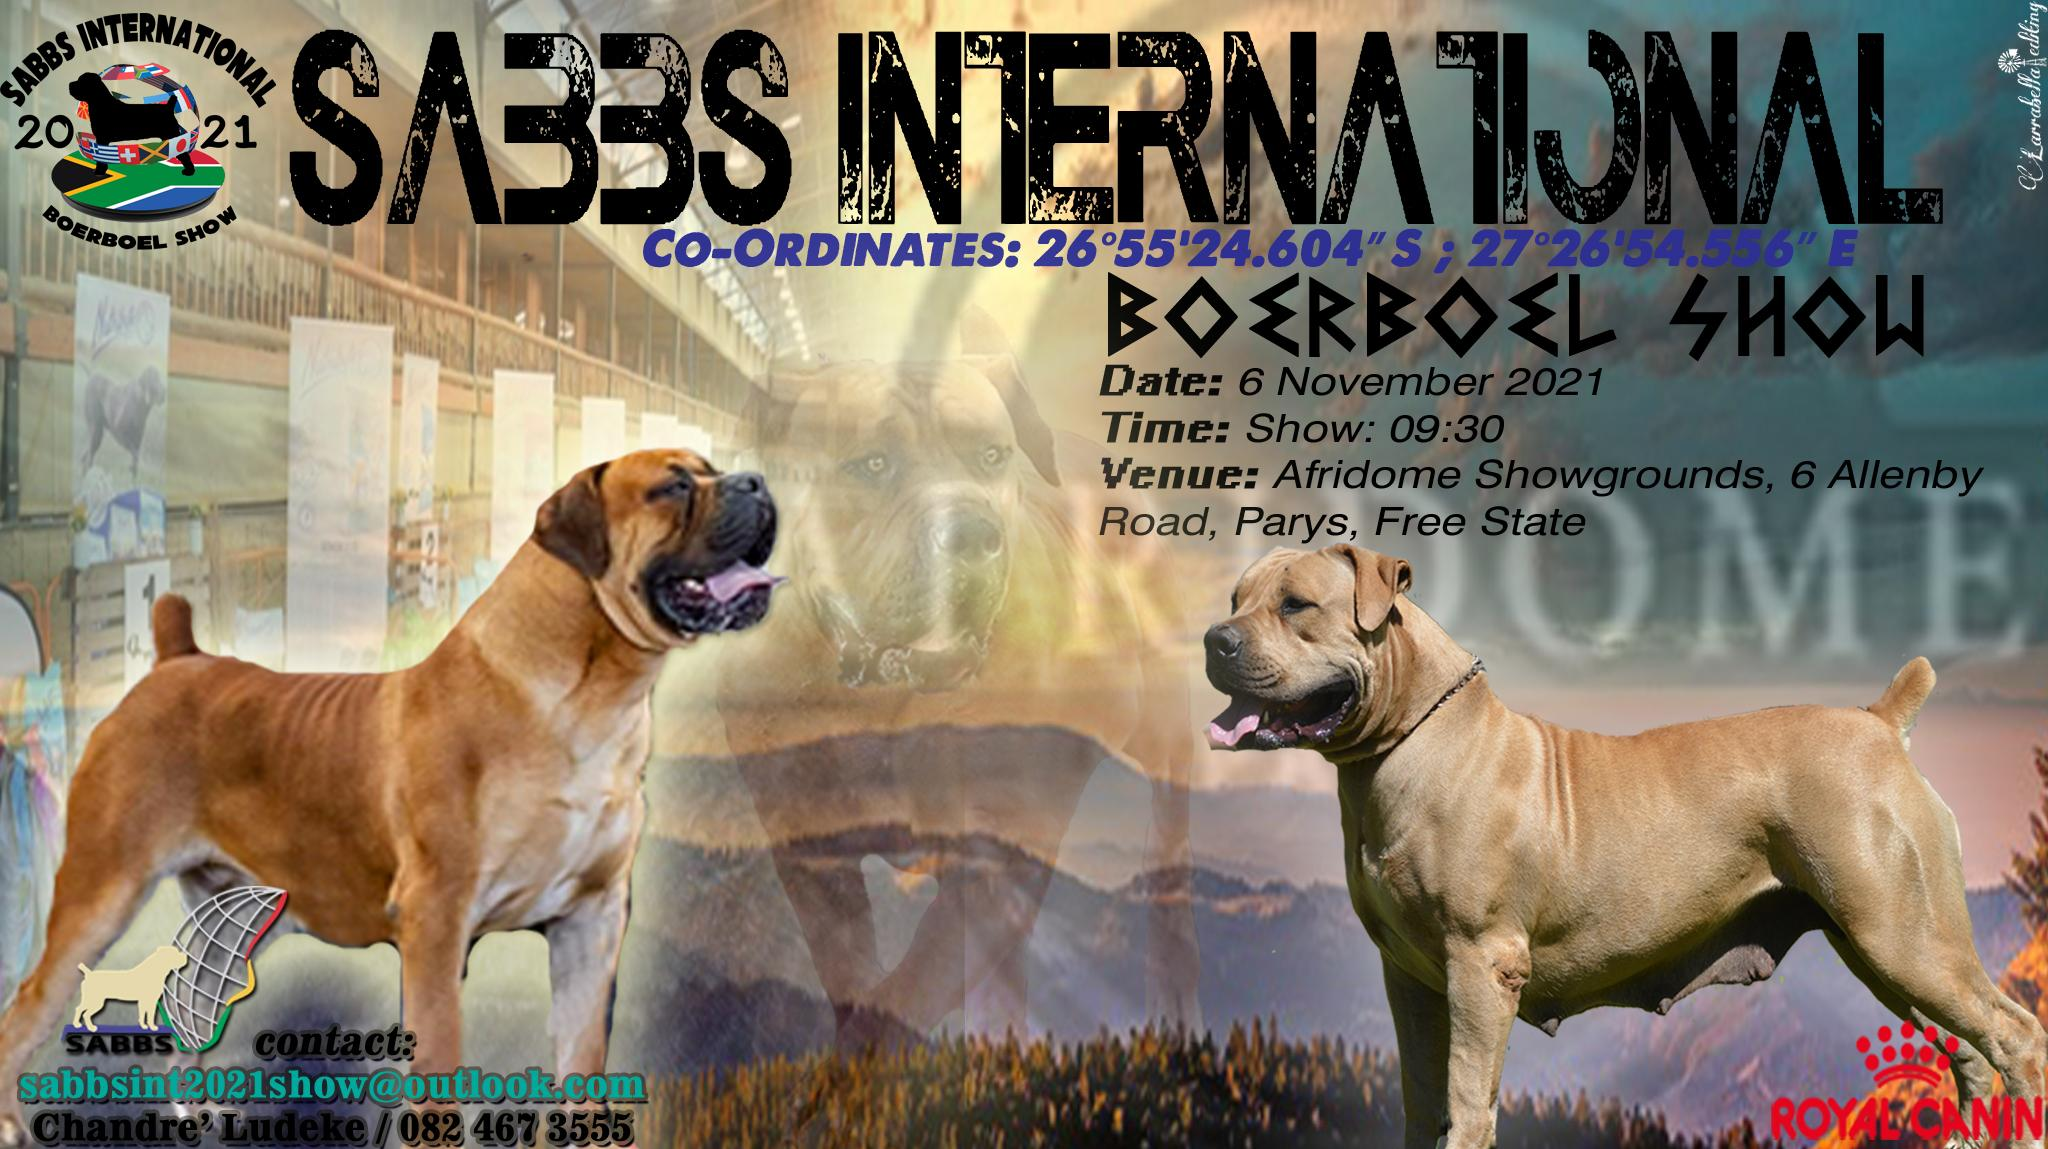 sabbs international show and expo poster copy 8d430